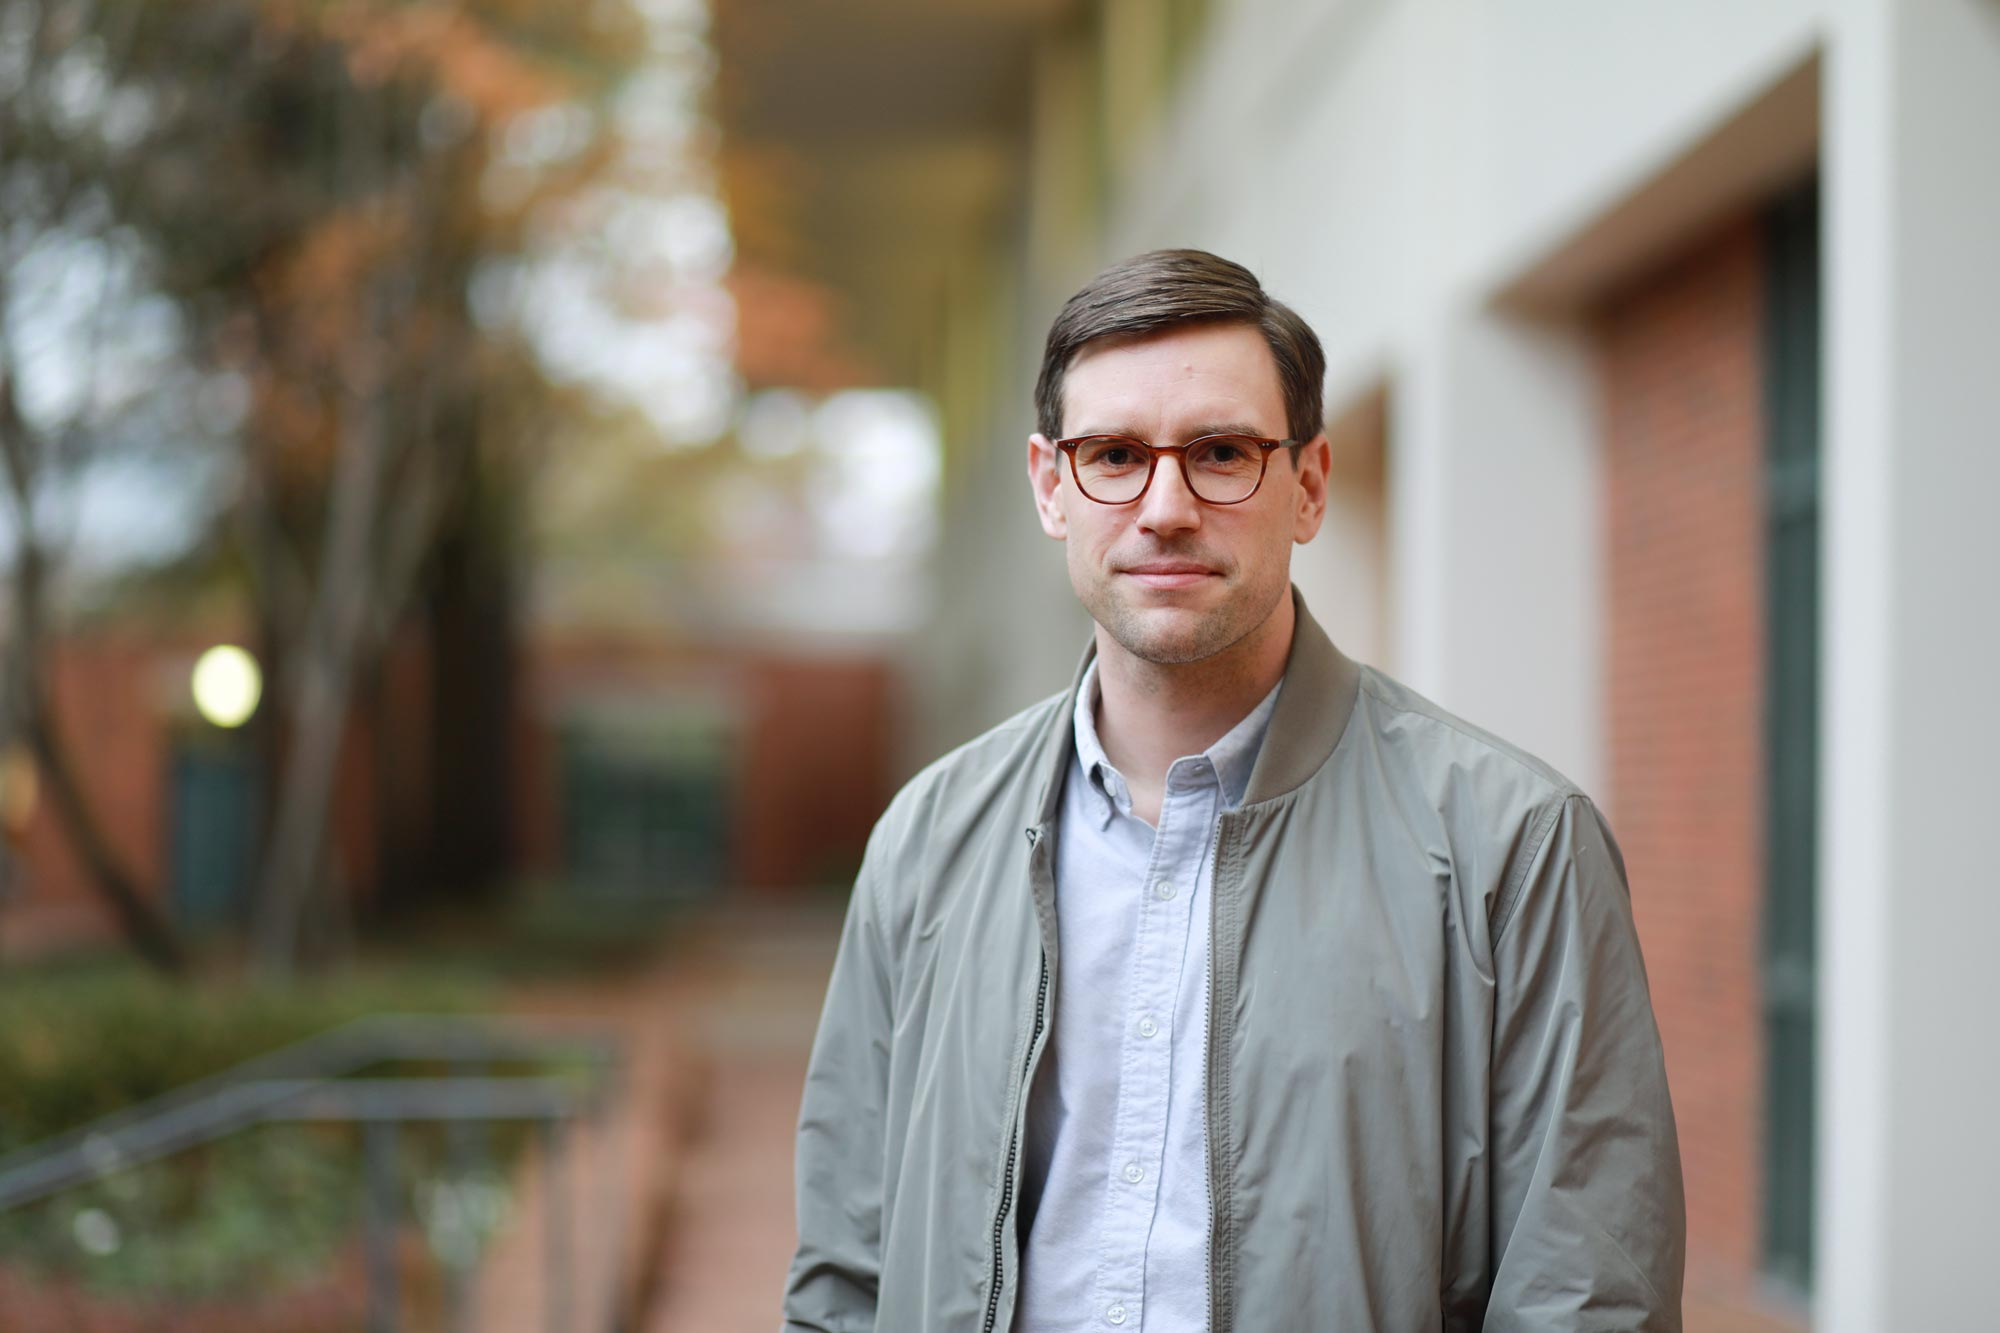 Zach Kuster is a second-year student at UVA's School of Law.